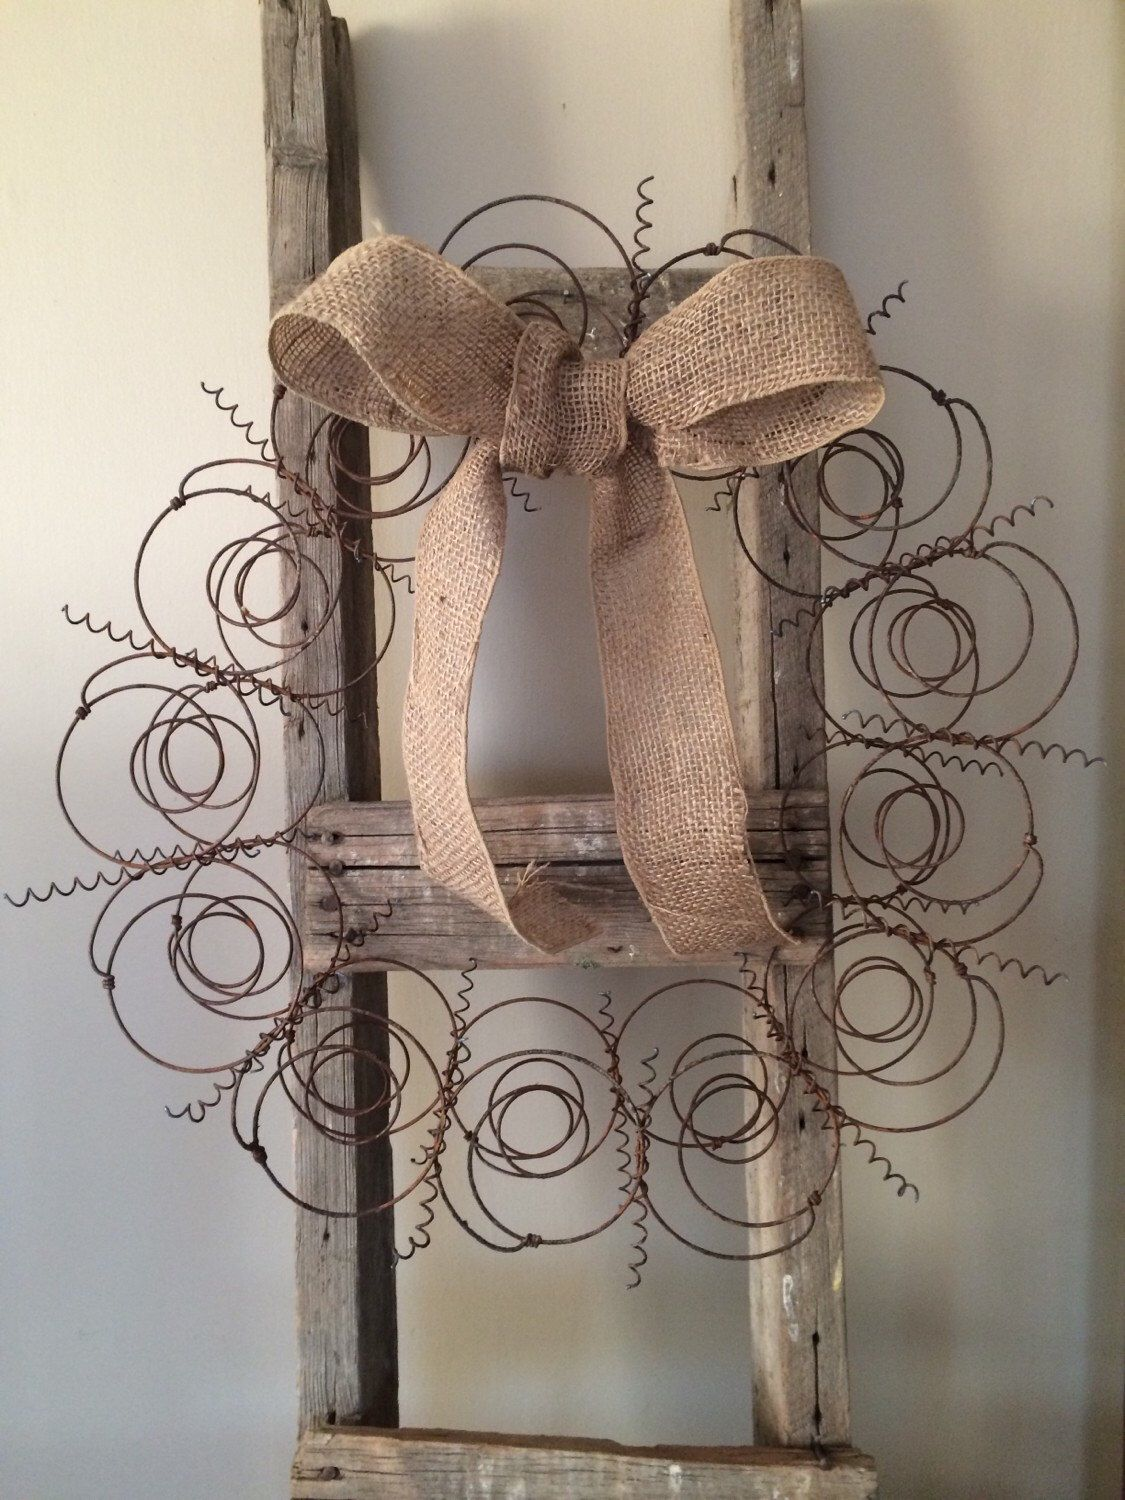 Rusty Metal Bed Spring Wreath and a Burlap Bow, Recycled